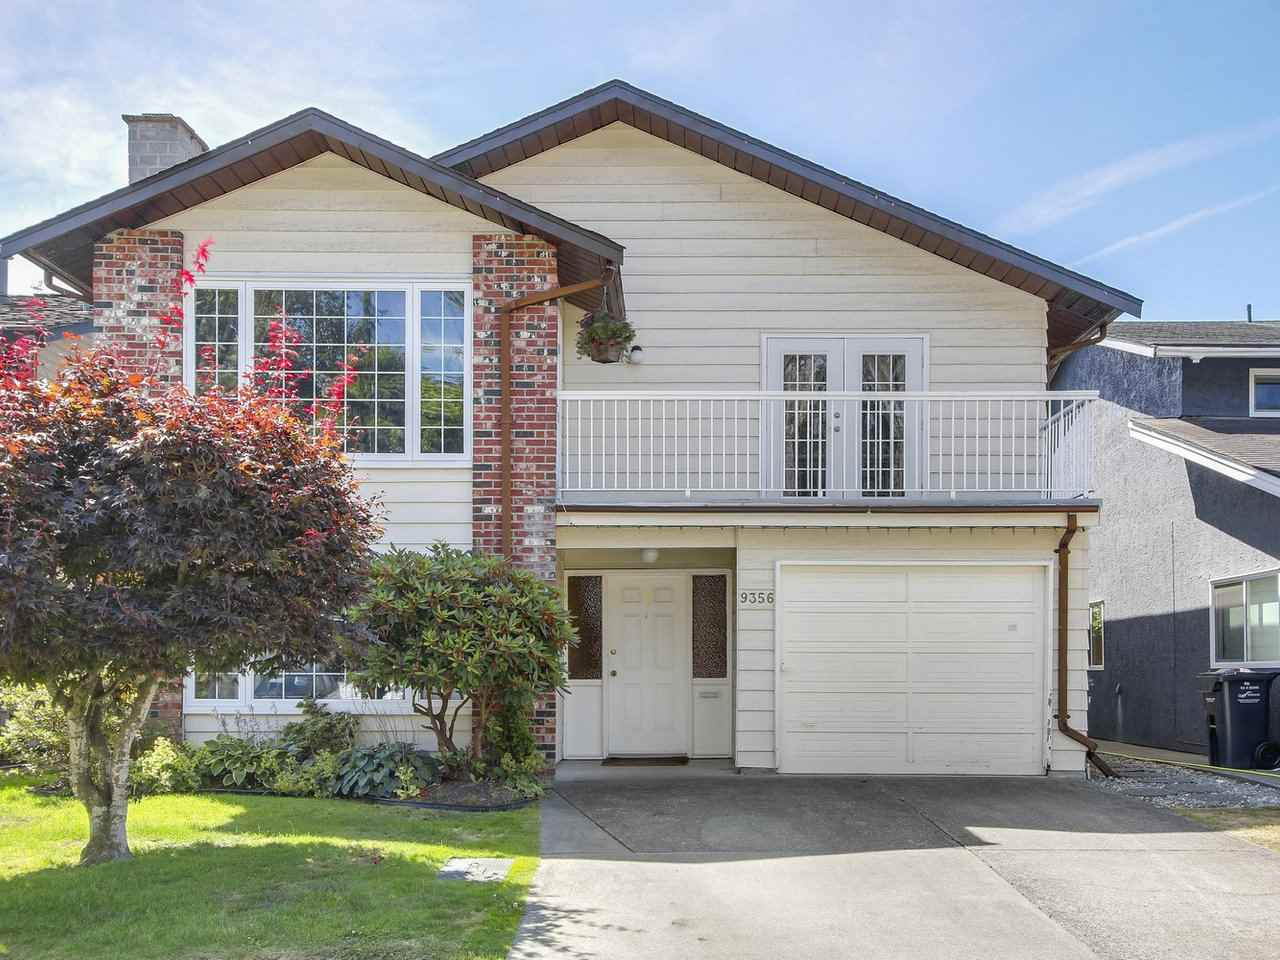 Detached at 9356 KINGSLEY CRESCENT, Richmond, British Columbia. Image 1